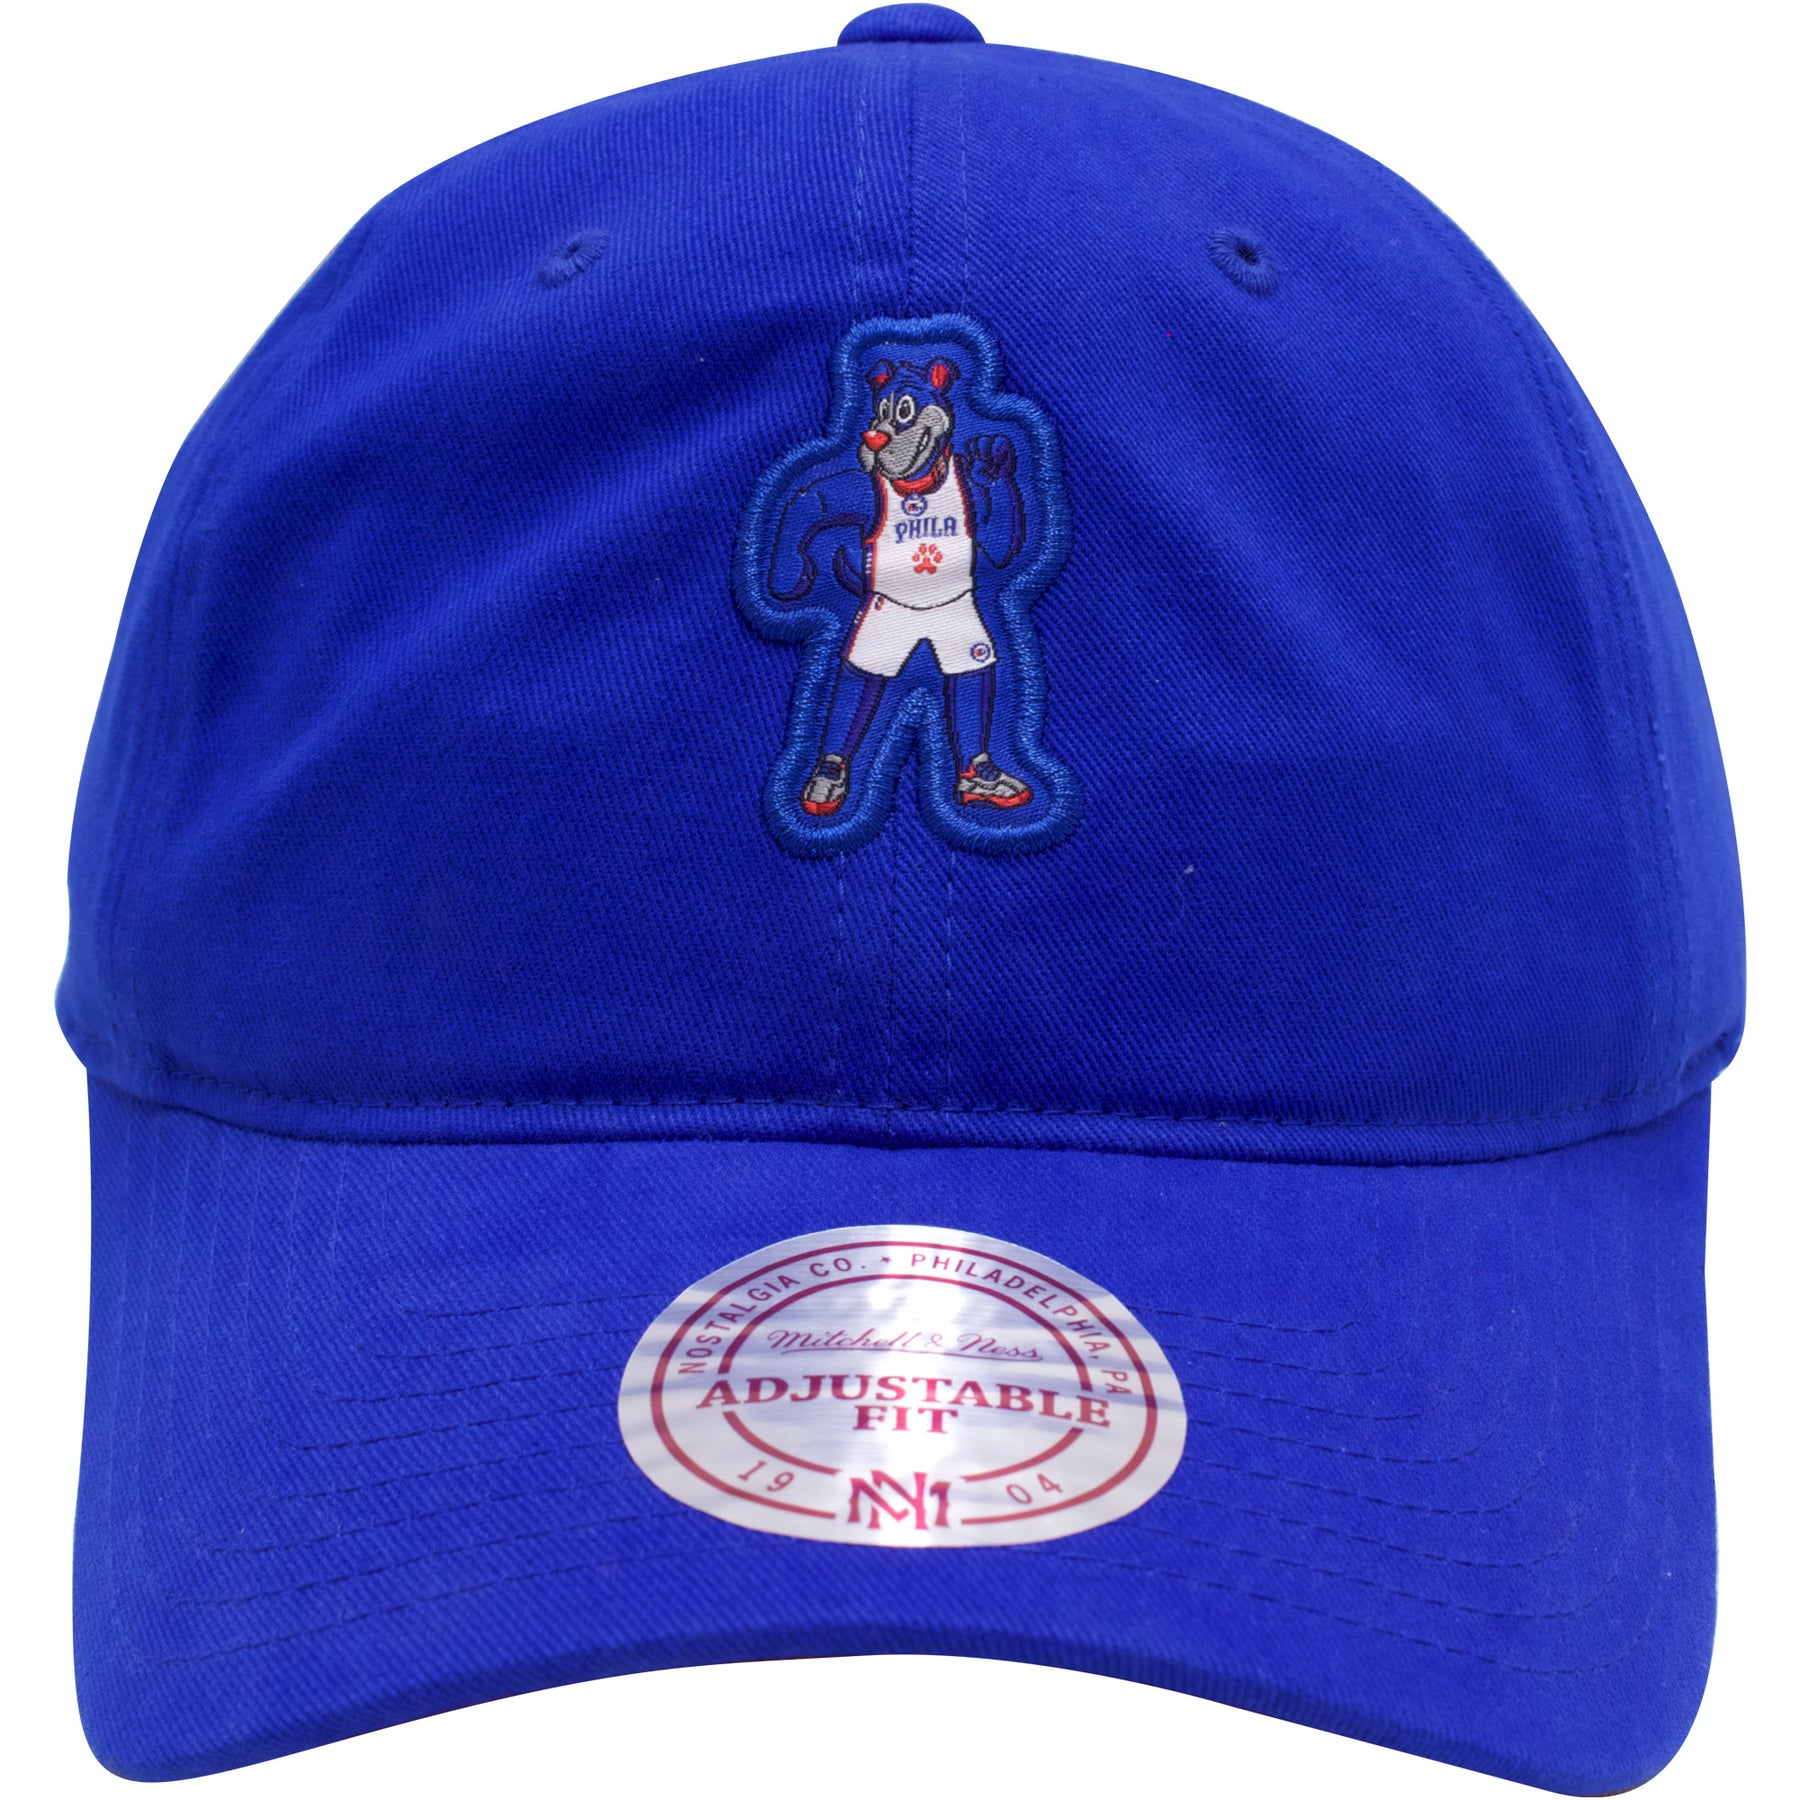 0265f794bfb the philadelphia 76ers mascot dad hat has franklin the dog on the front